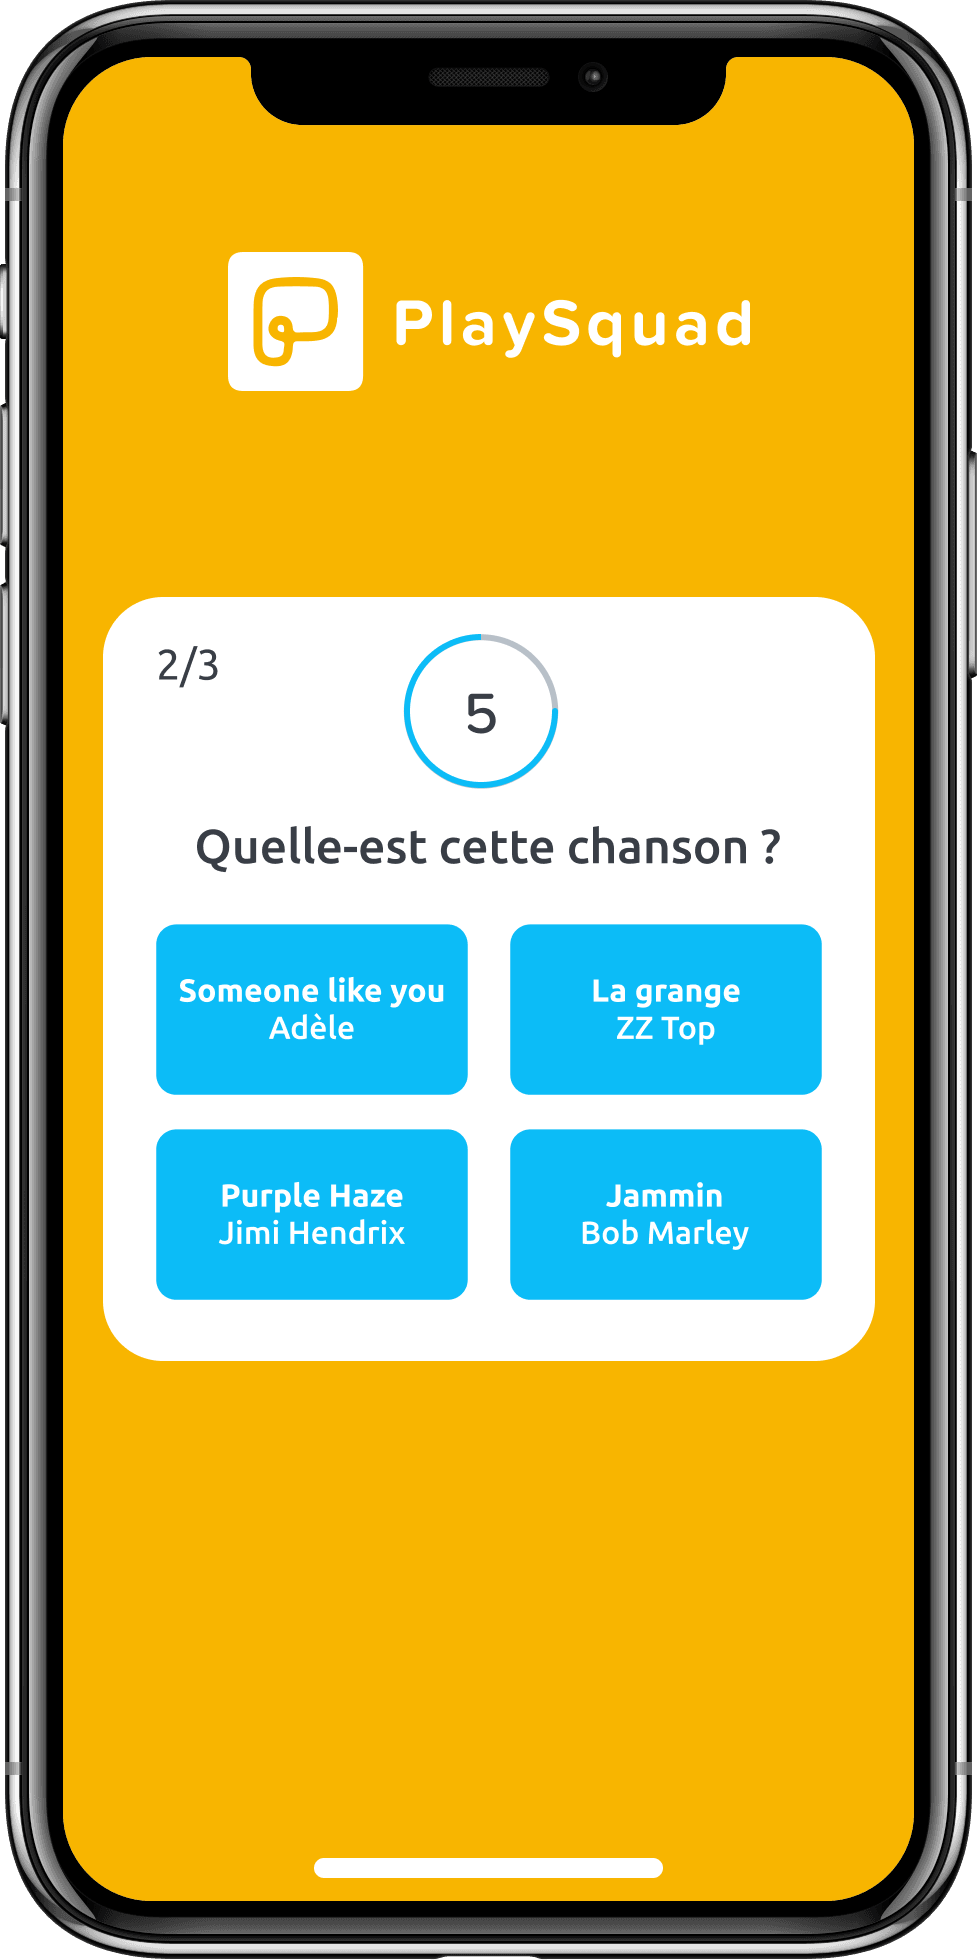 Capture d'écran de l'application PlaySquad au moment de répondre à une question